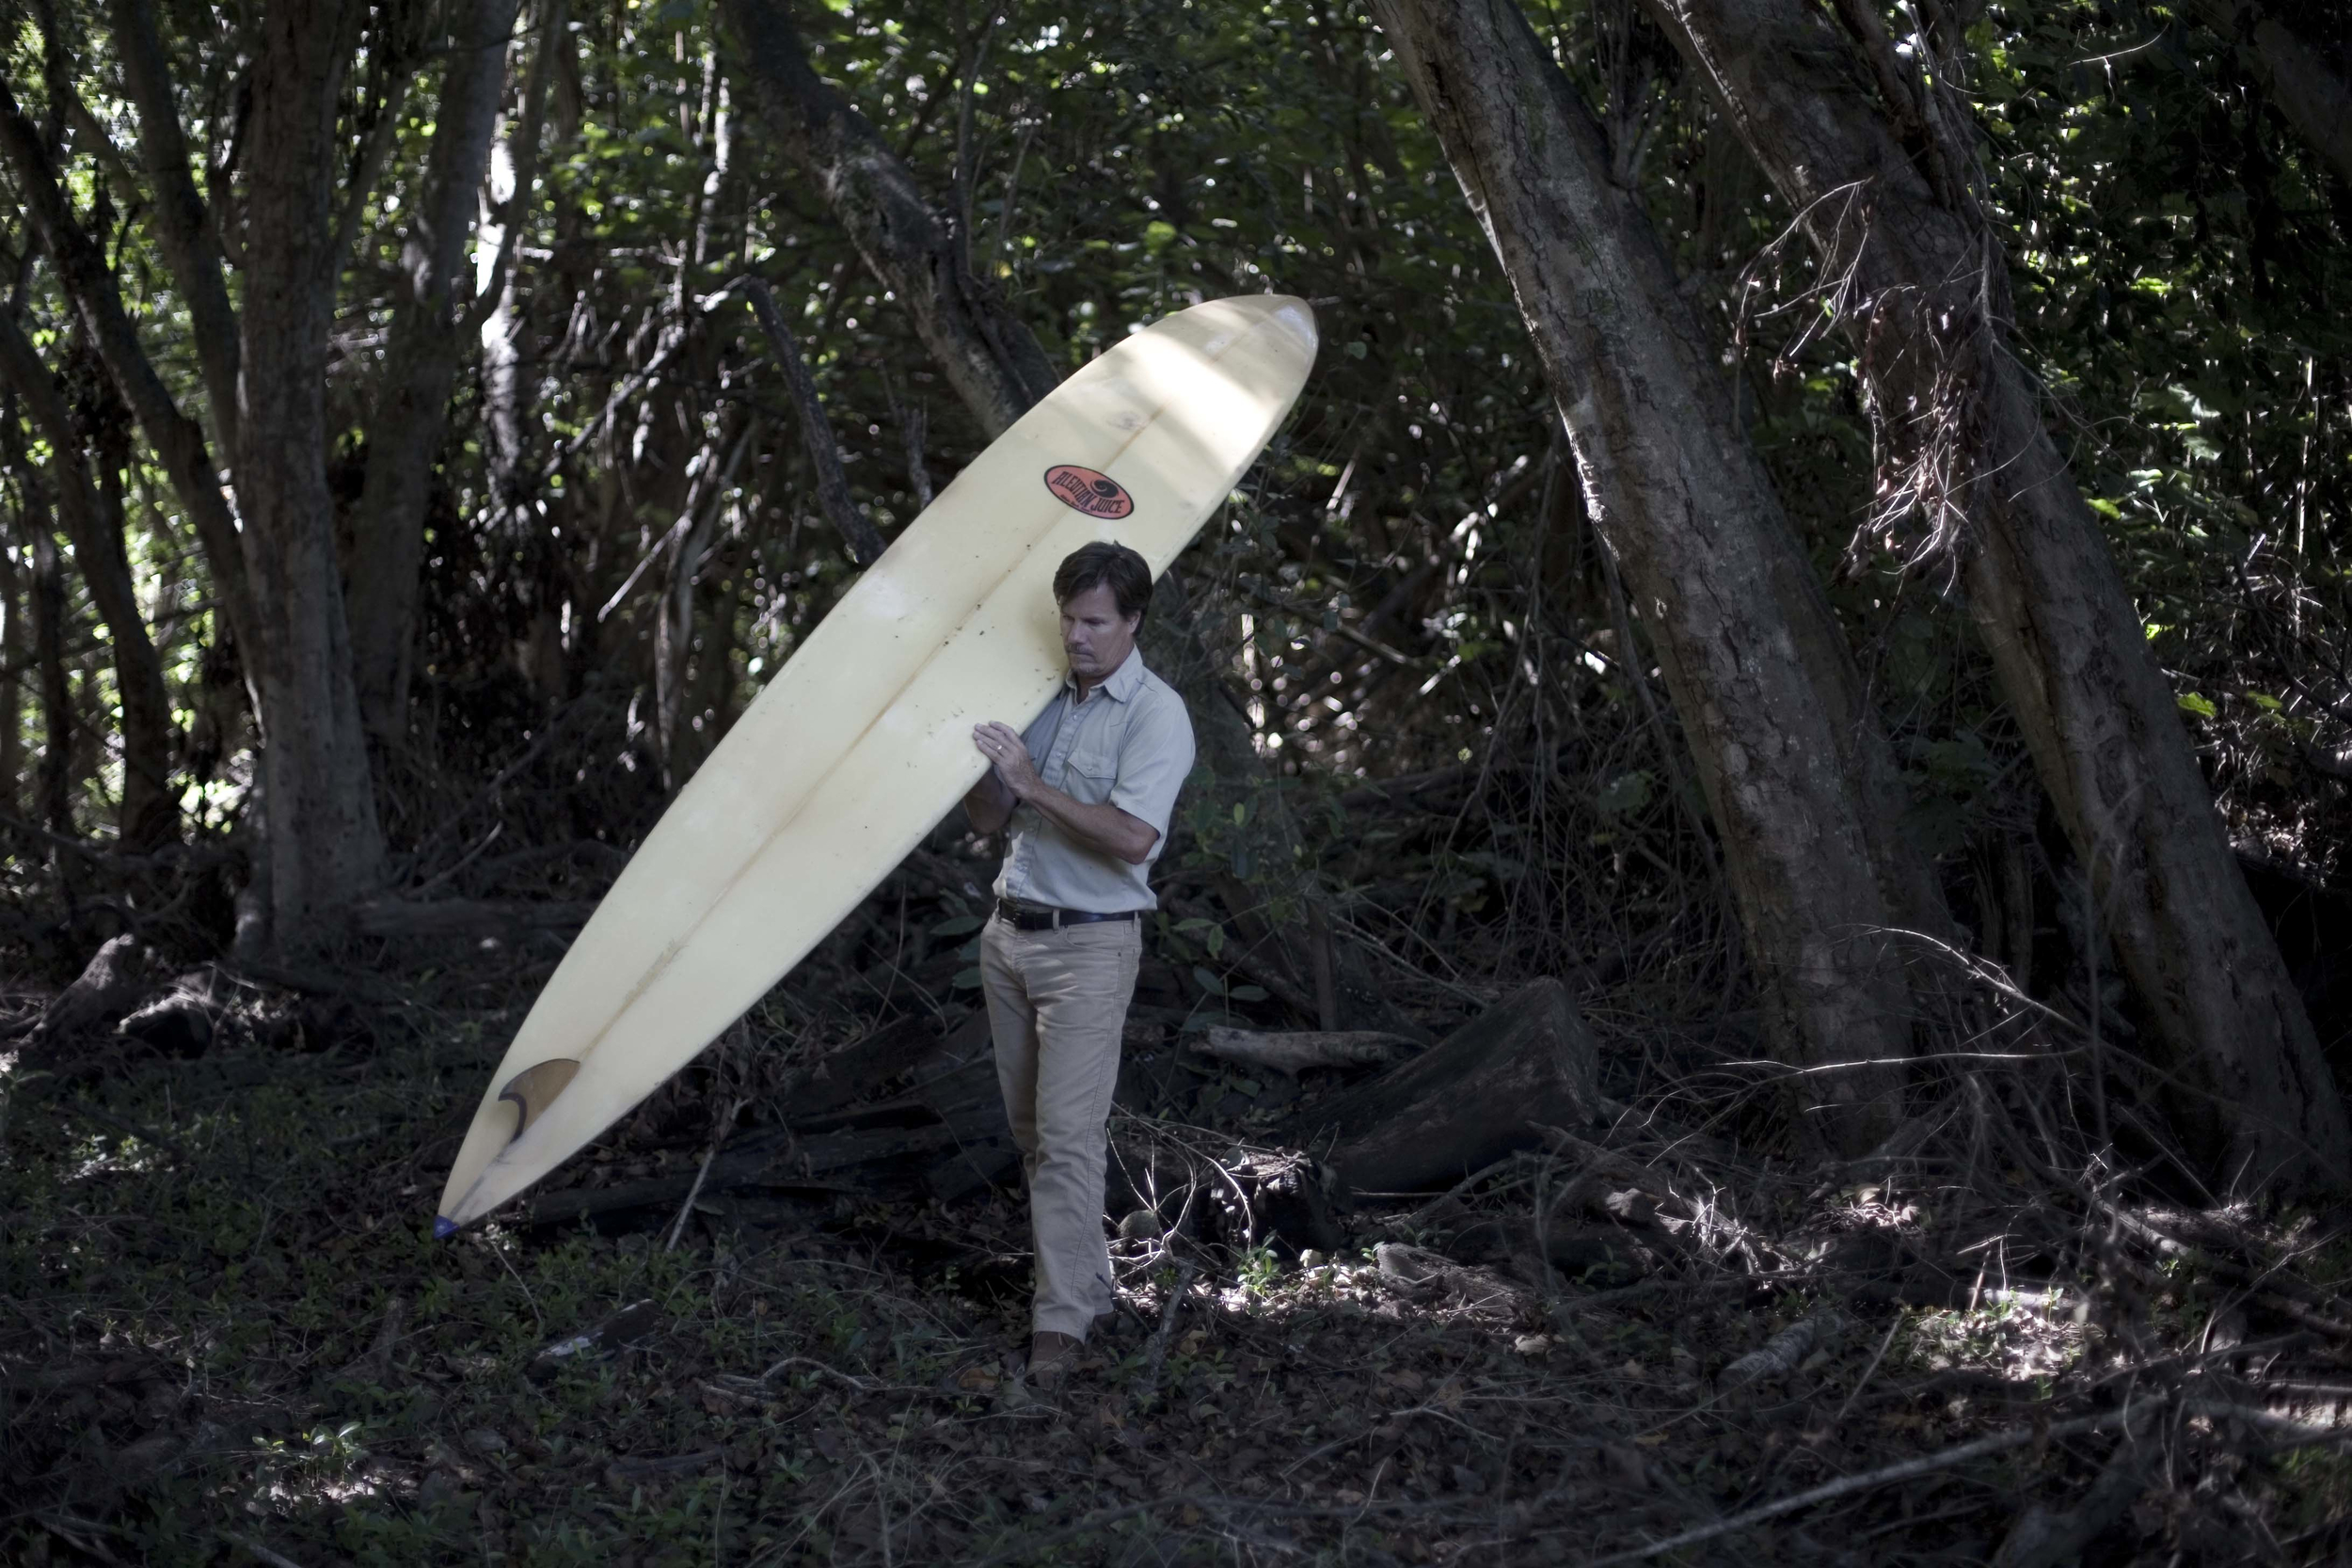 """12' 0"""" Makaha Point Doomsday Machine made in 1997 for that one huge Greg Noll day ... but Doomsday never came and this board became a 3-prong dive board and surfboard-class paddleboard racer -- and stepping stone to the first PSV."""